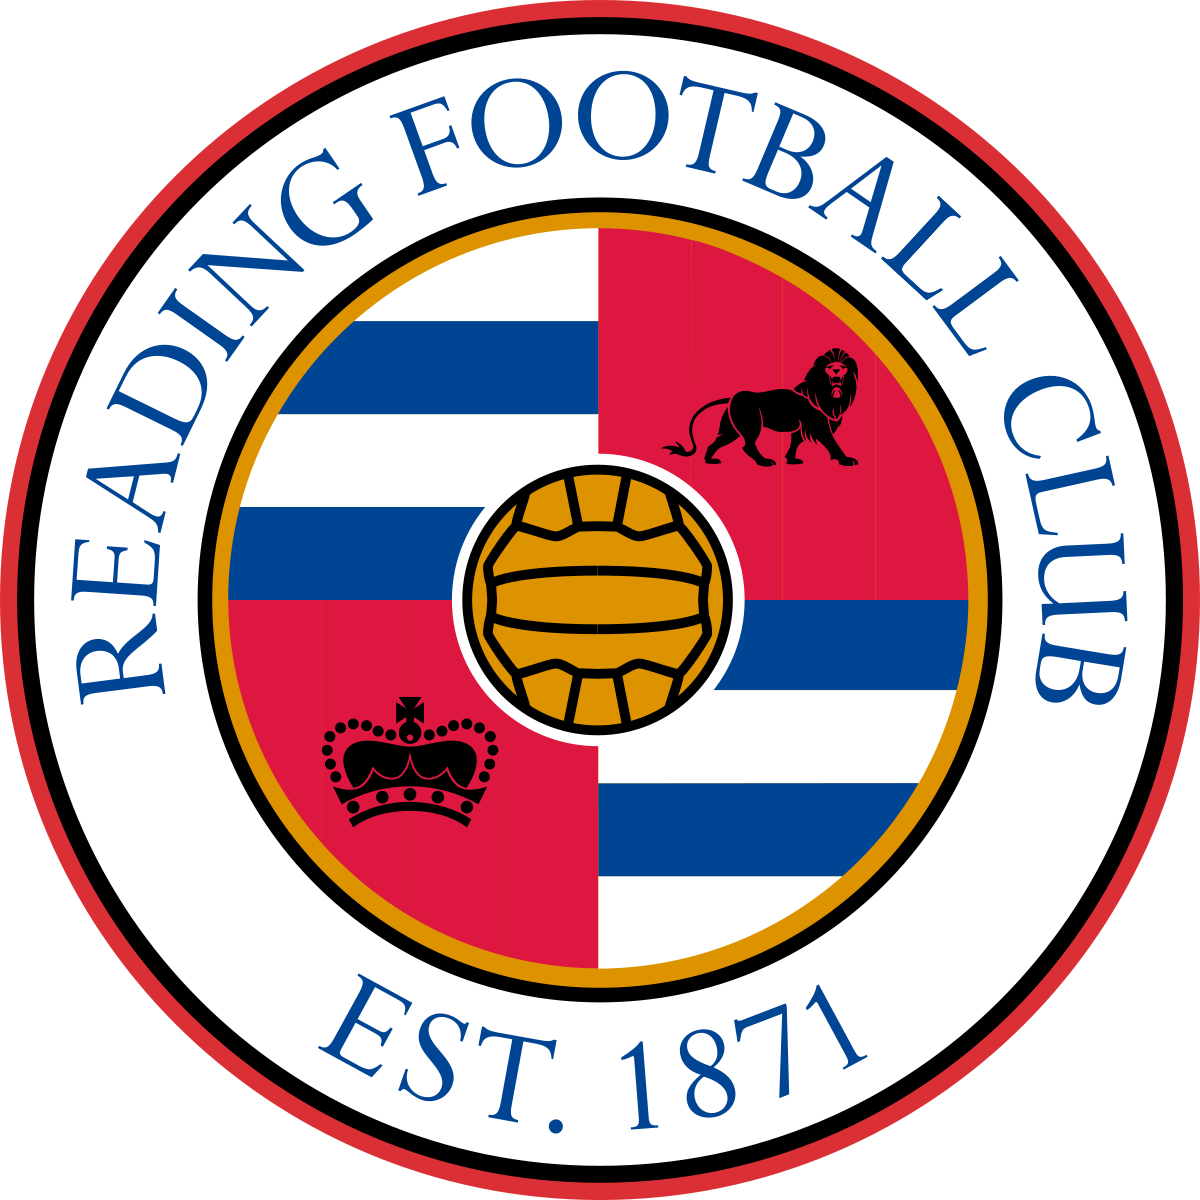 Turkey football federation crest 256 x 256 png image. Reading f c wikipedia